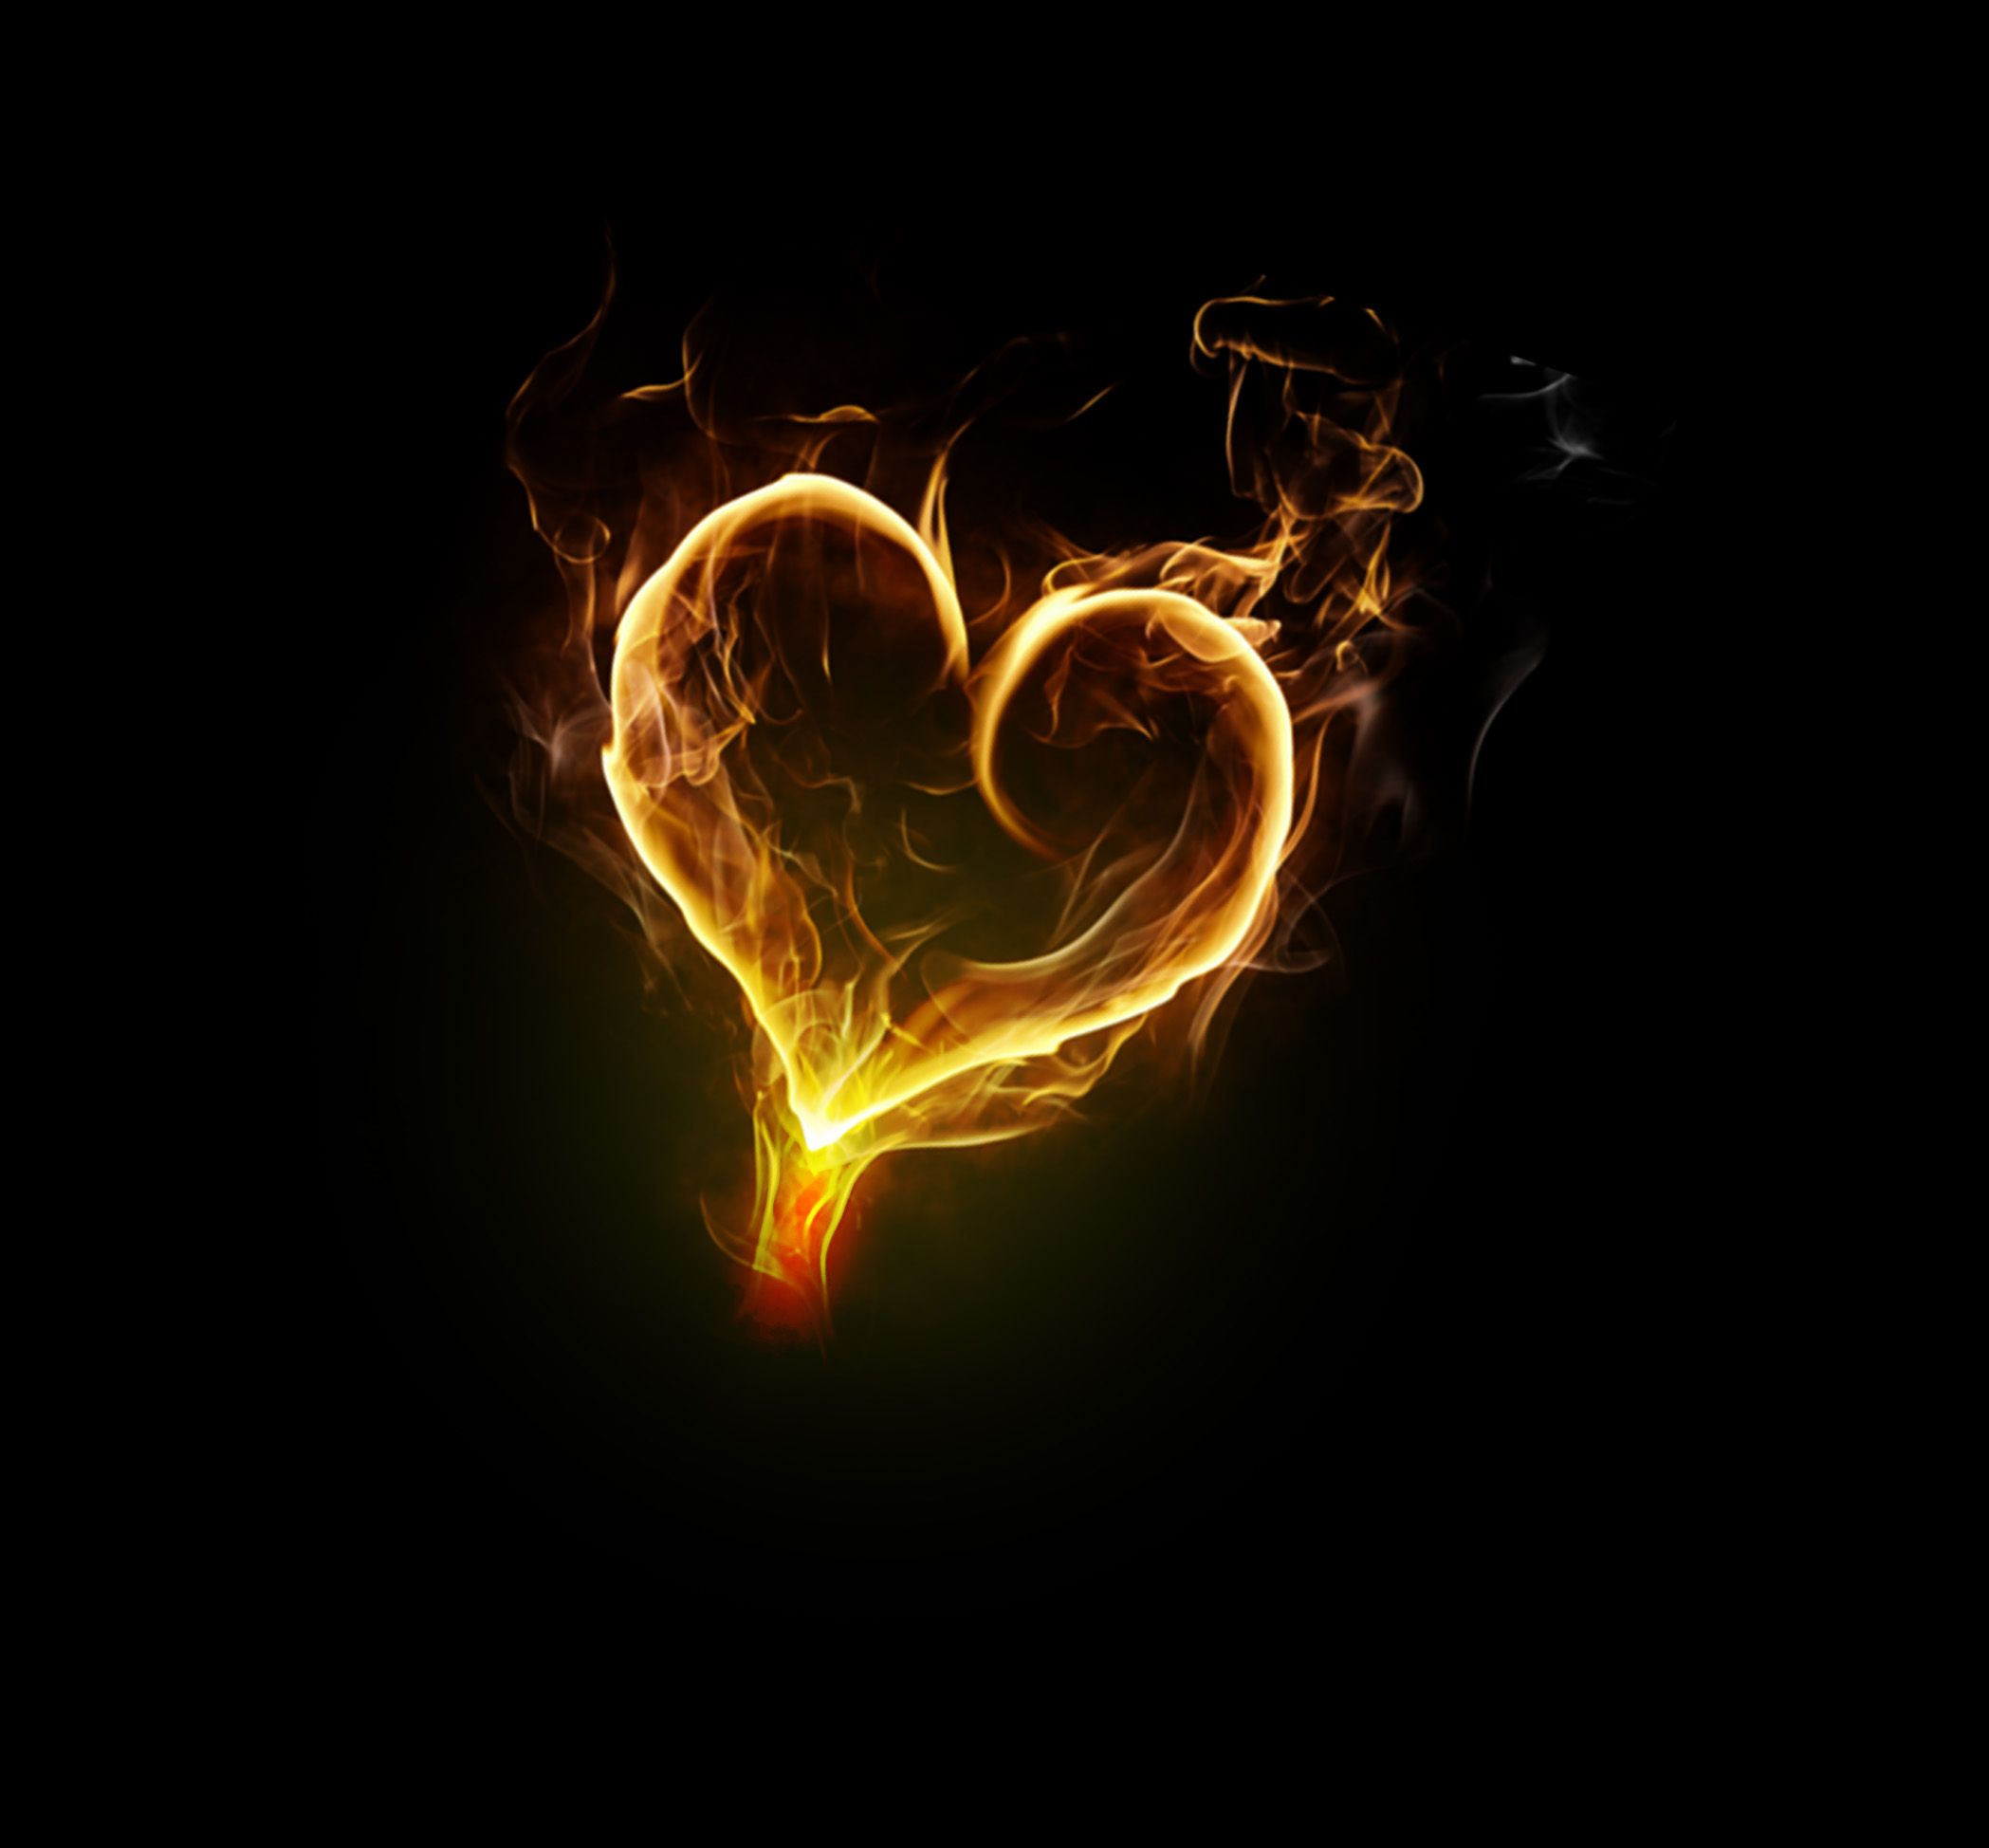 Dark Love Editing Backgrounds And Stock Images Download Love Background Images Best Background Images Desktop Background Pictures